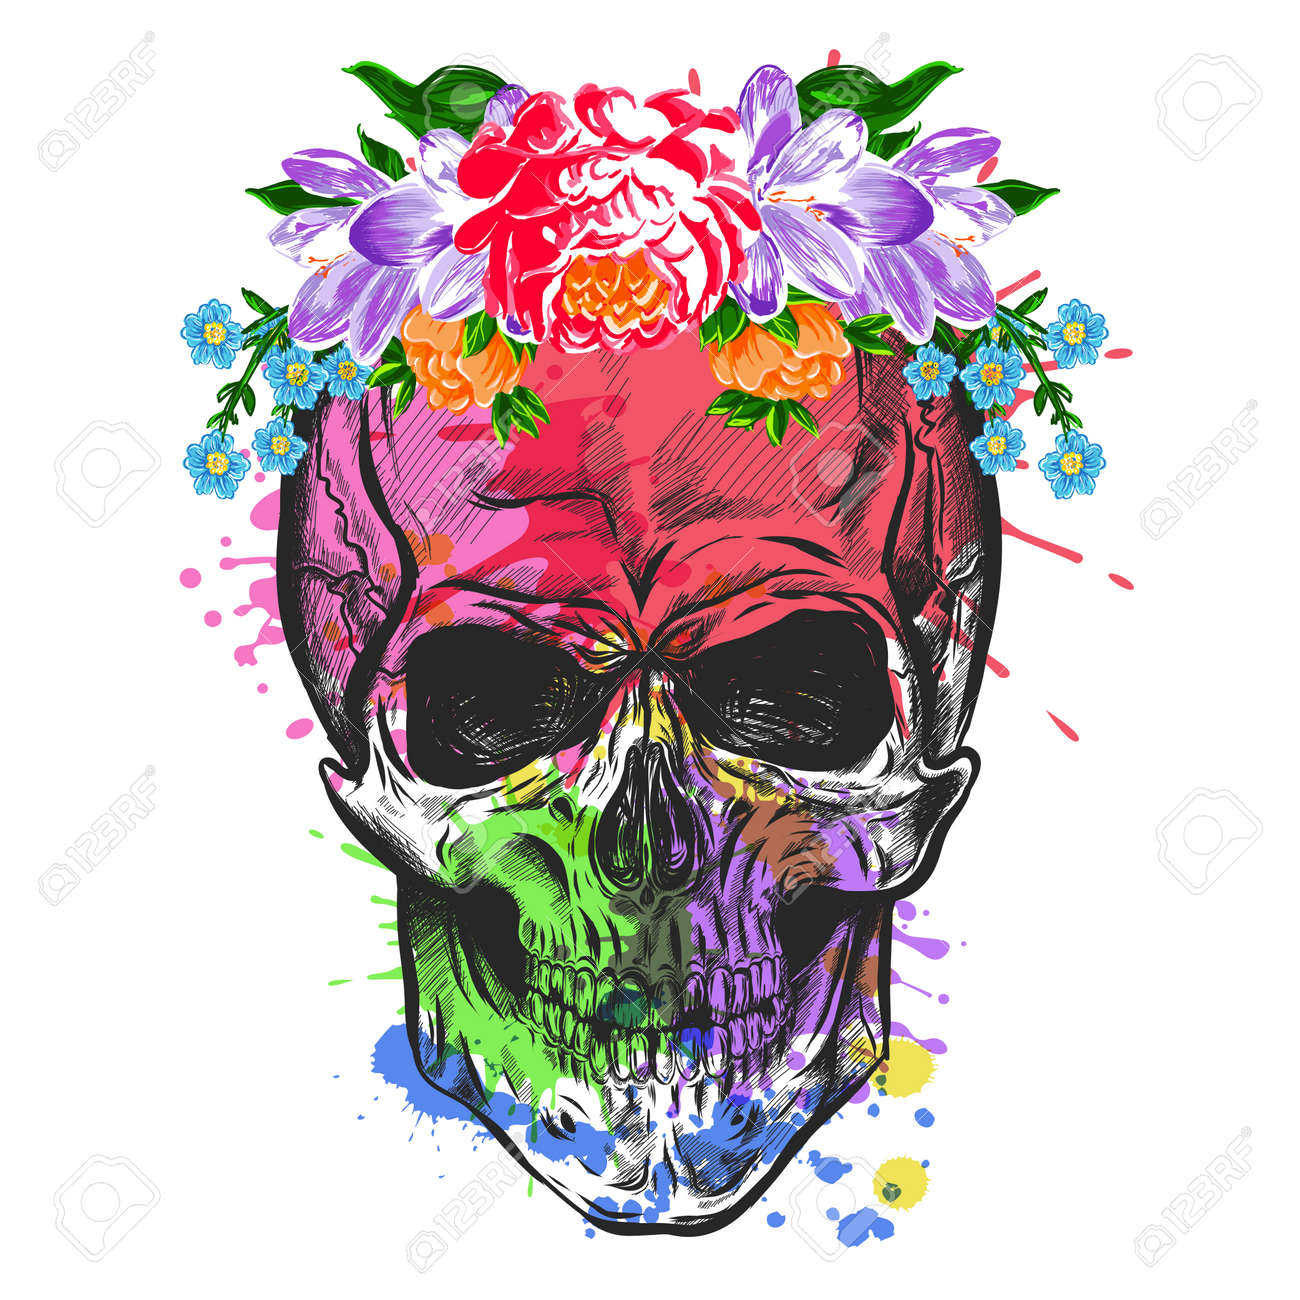 Skull And Flowers. Sketch With Watercolor Effect. Vector - 60996615